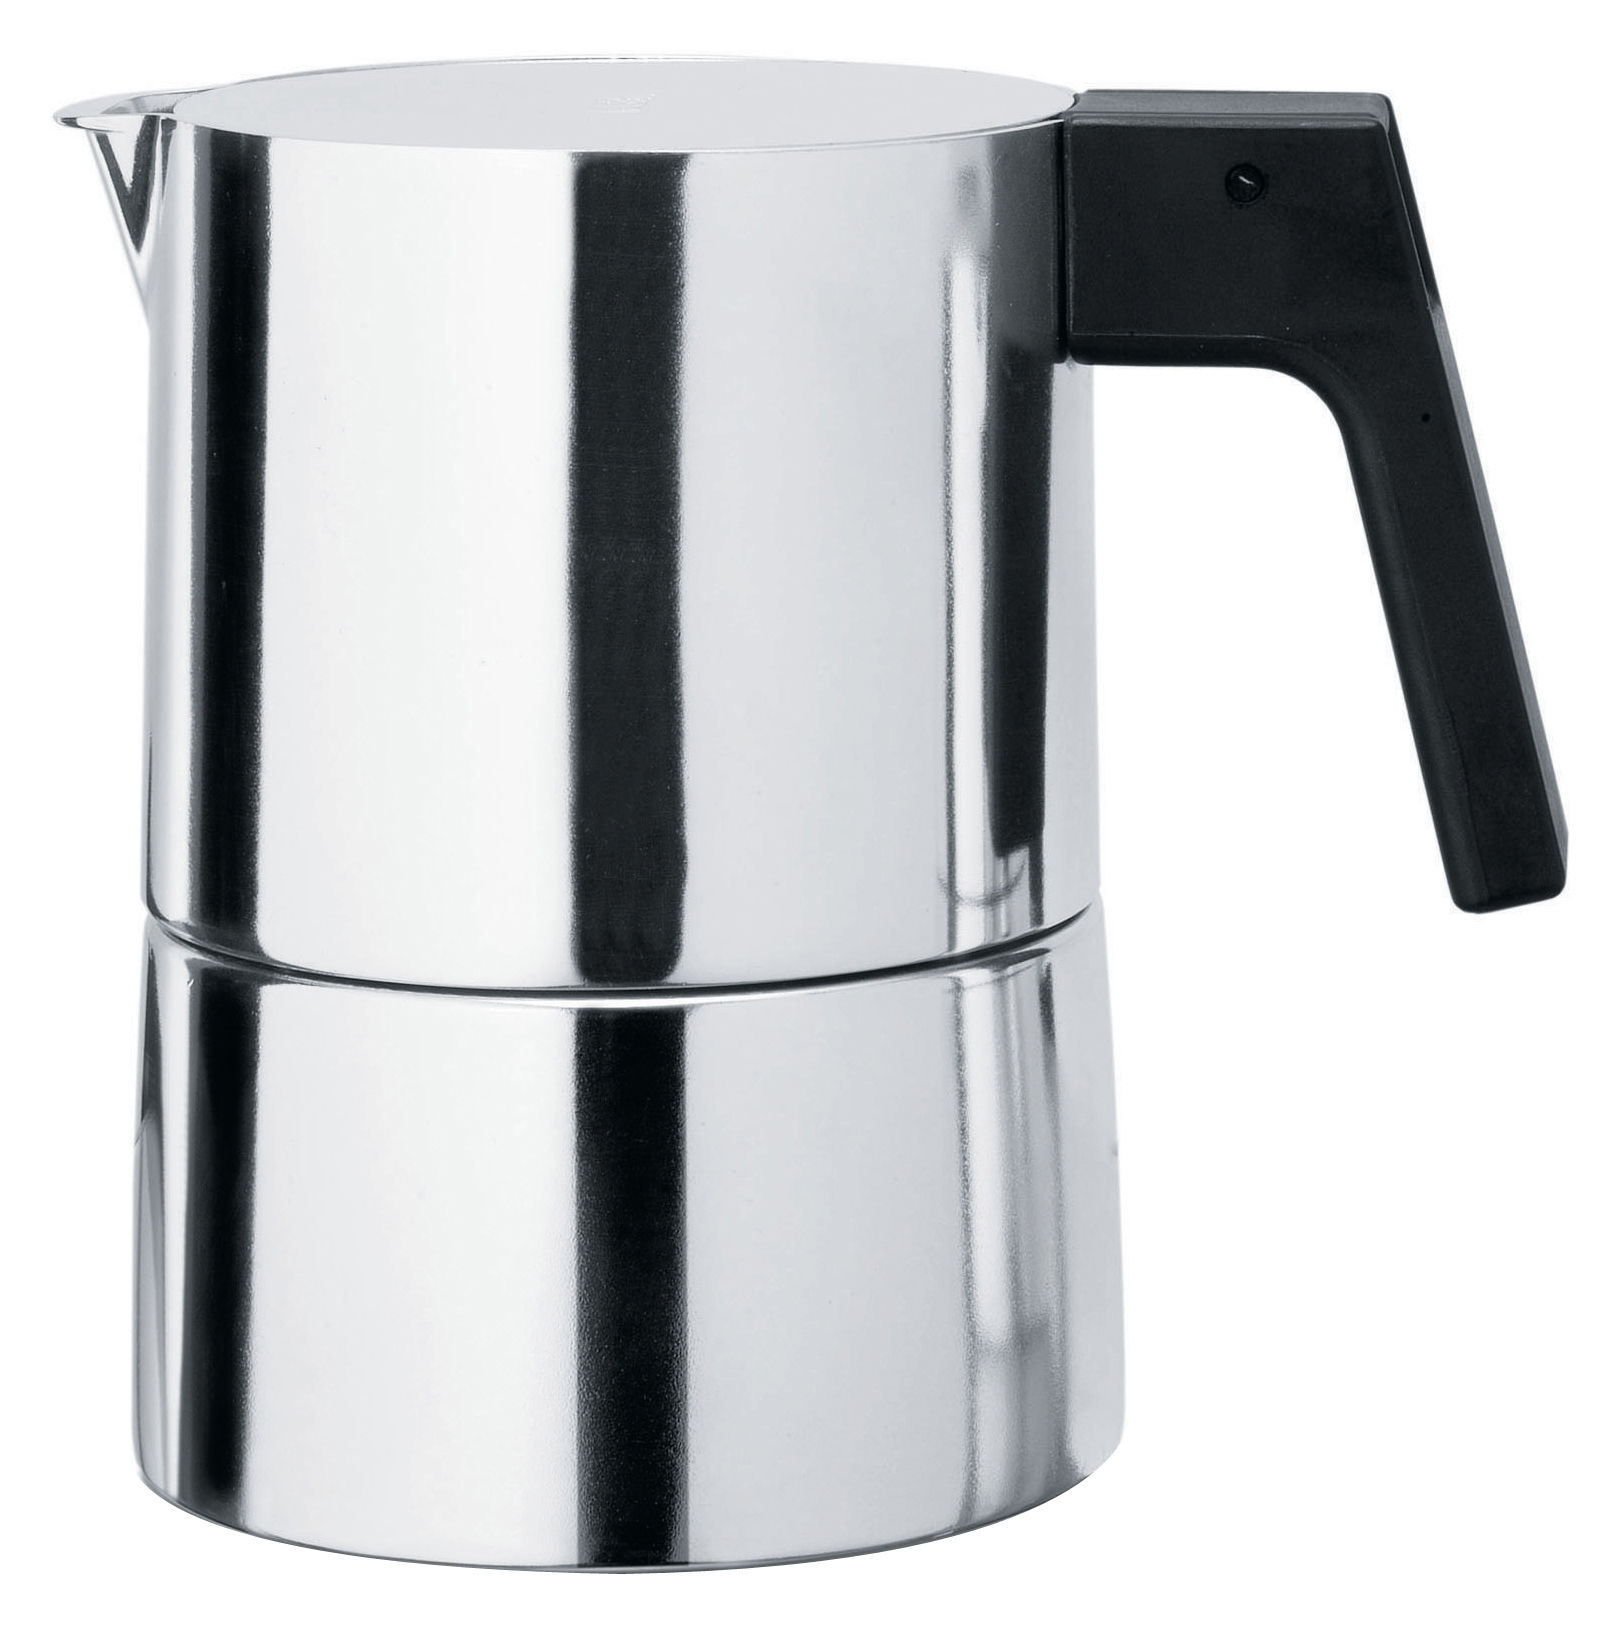 Italian Coffee Maker Stuck : Pina Italian espresso maker - 6 cups 6 cups by Alessi